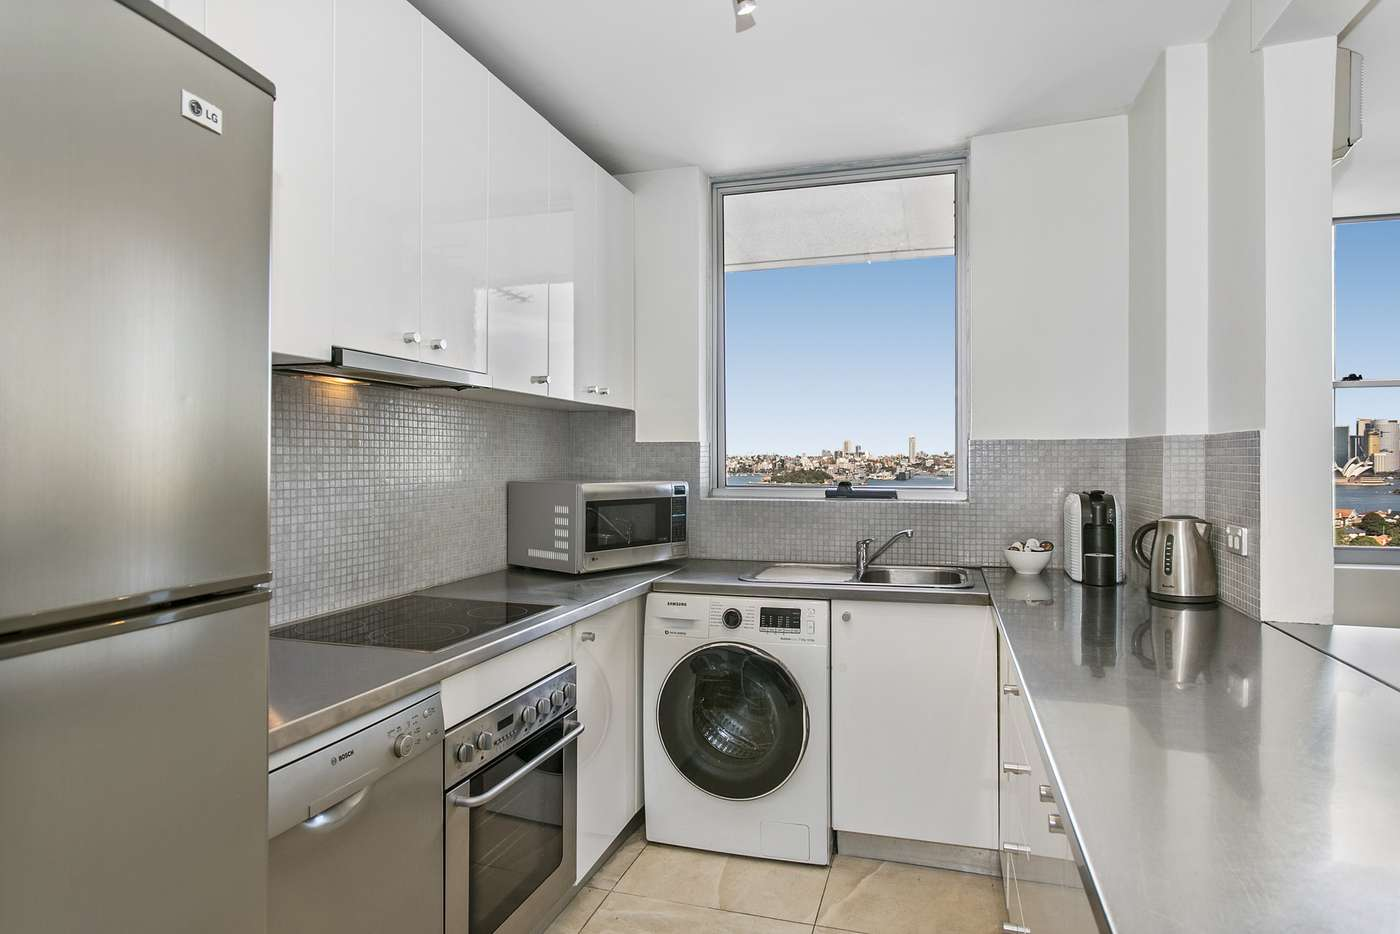 Seventh view of Homely apartment listing, 71/43 Musgrave Stret, Mosman NSW 2088